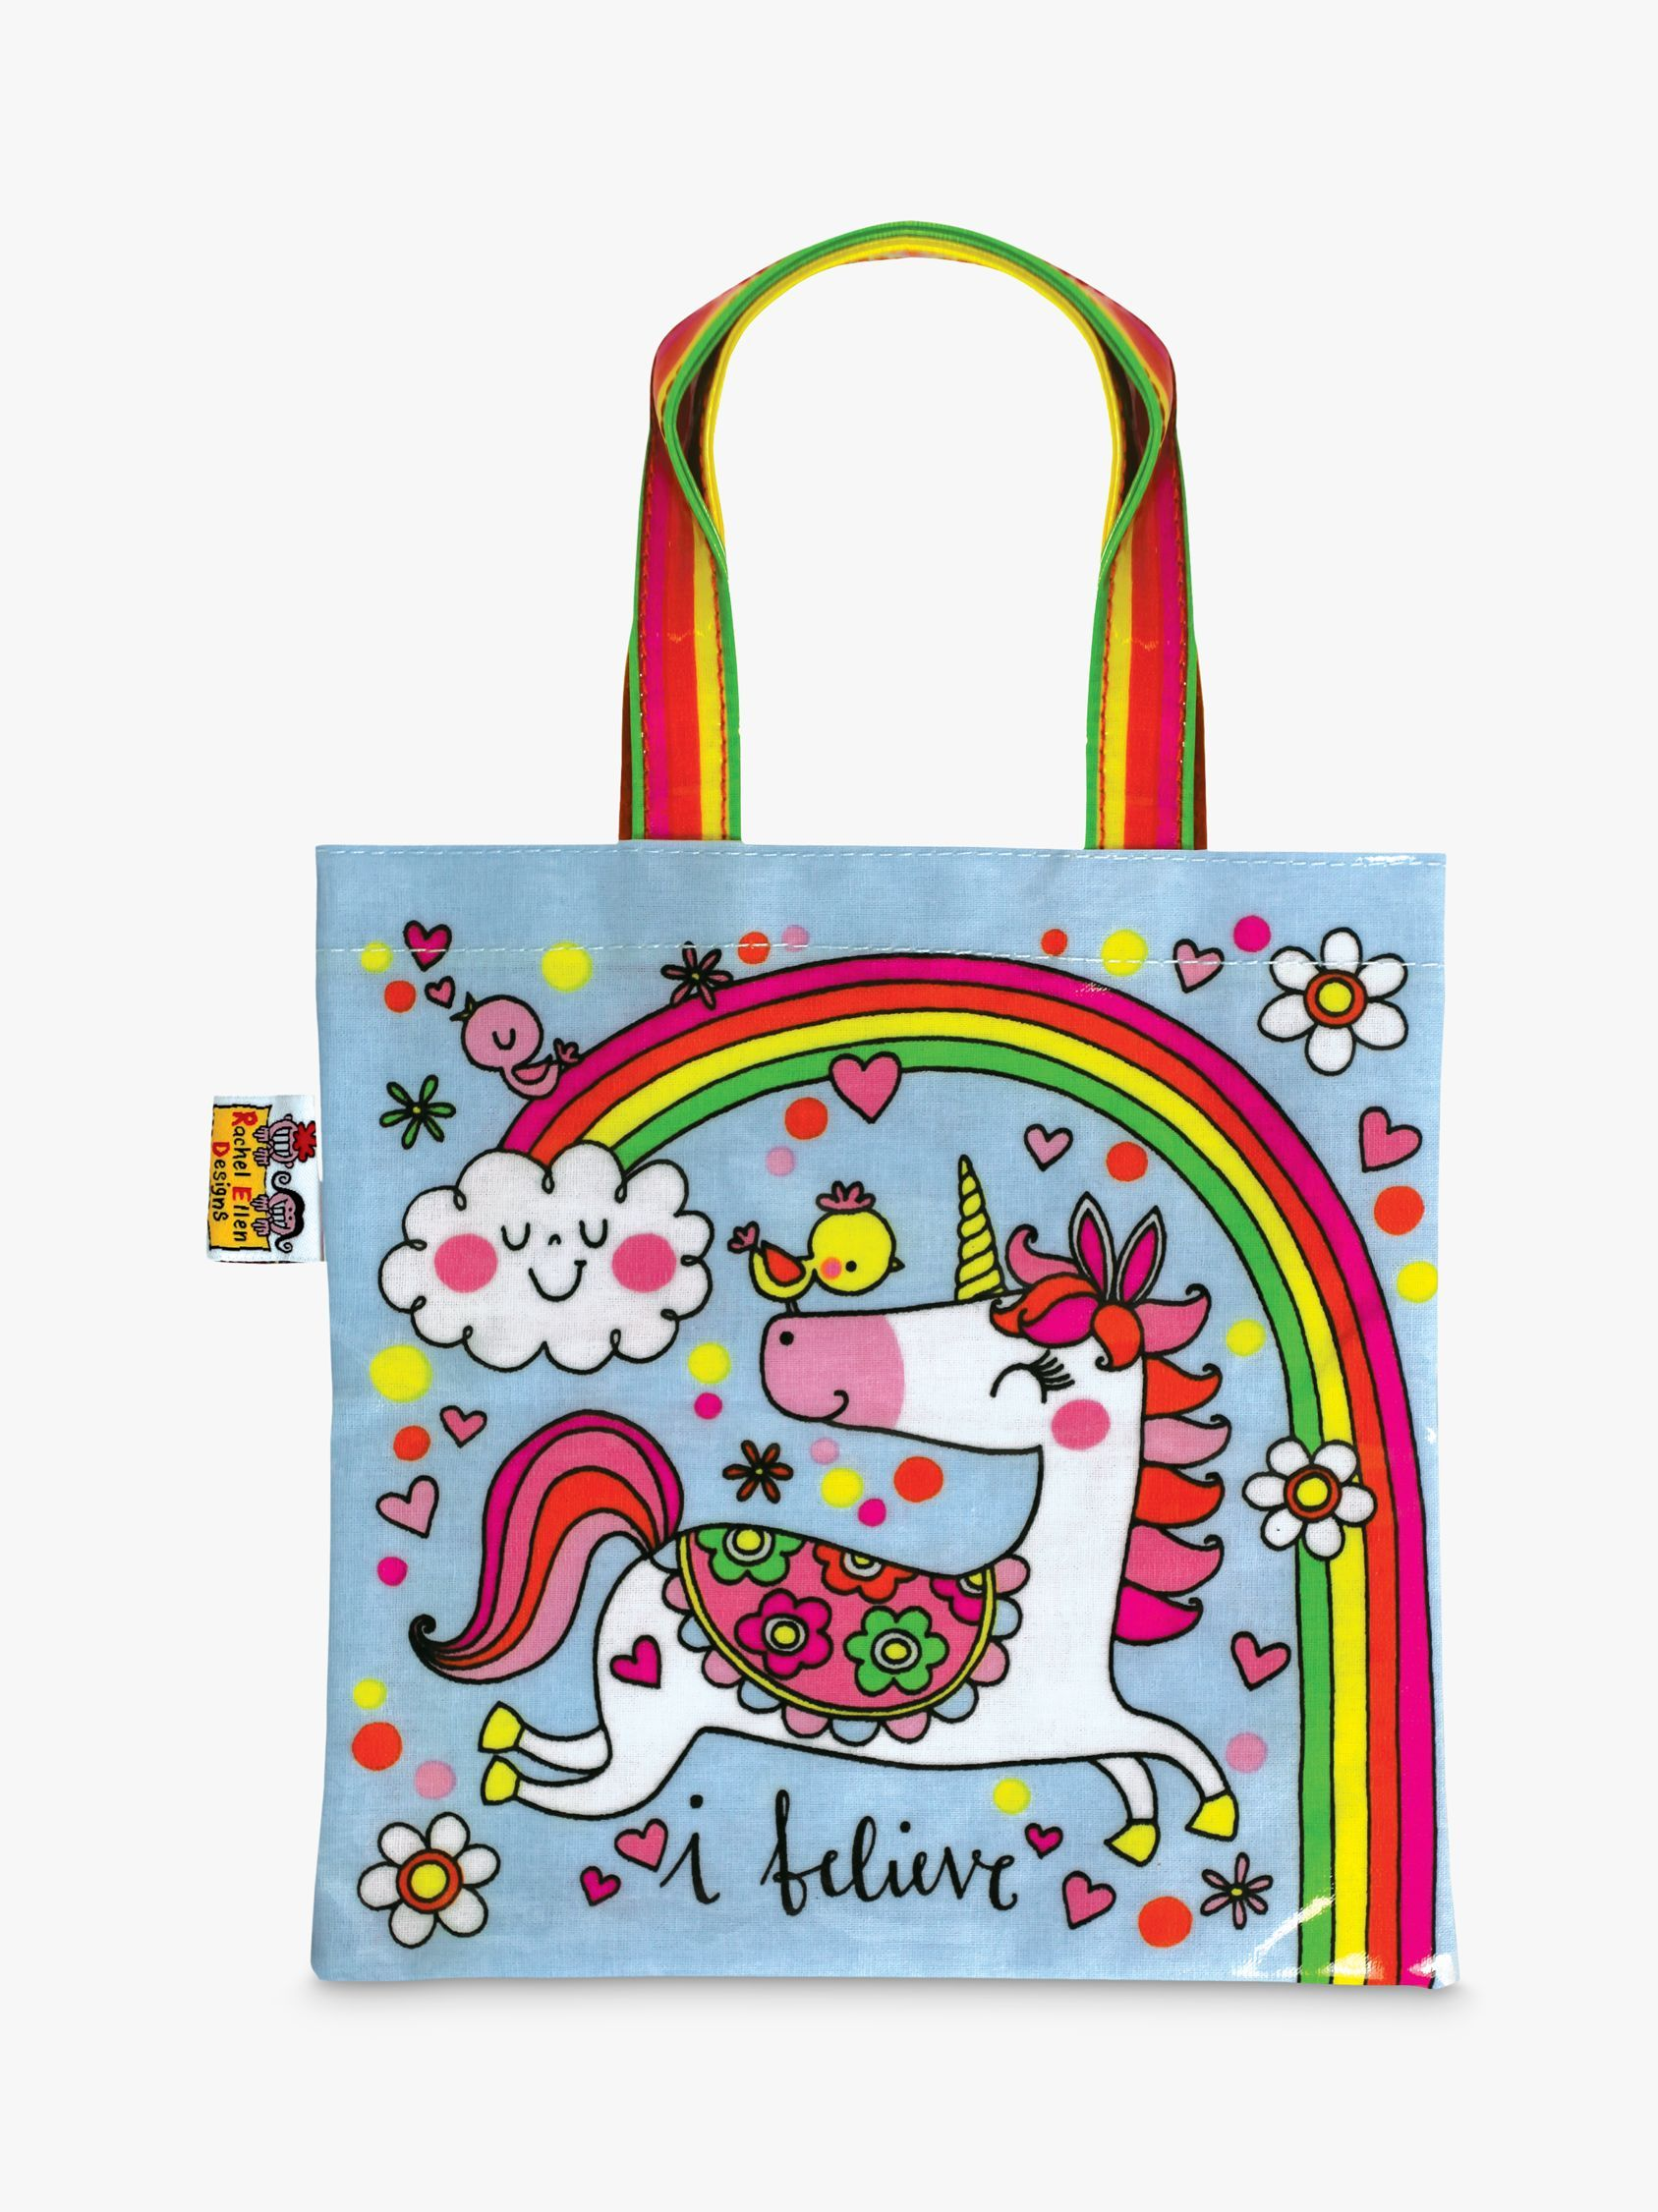 Unicorn and Rainbows Mini Tote Bag by Rachel Ellen Cute Birthday Gift for Girls